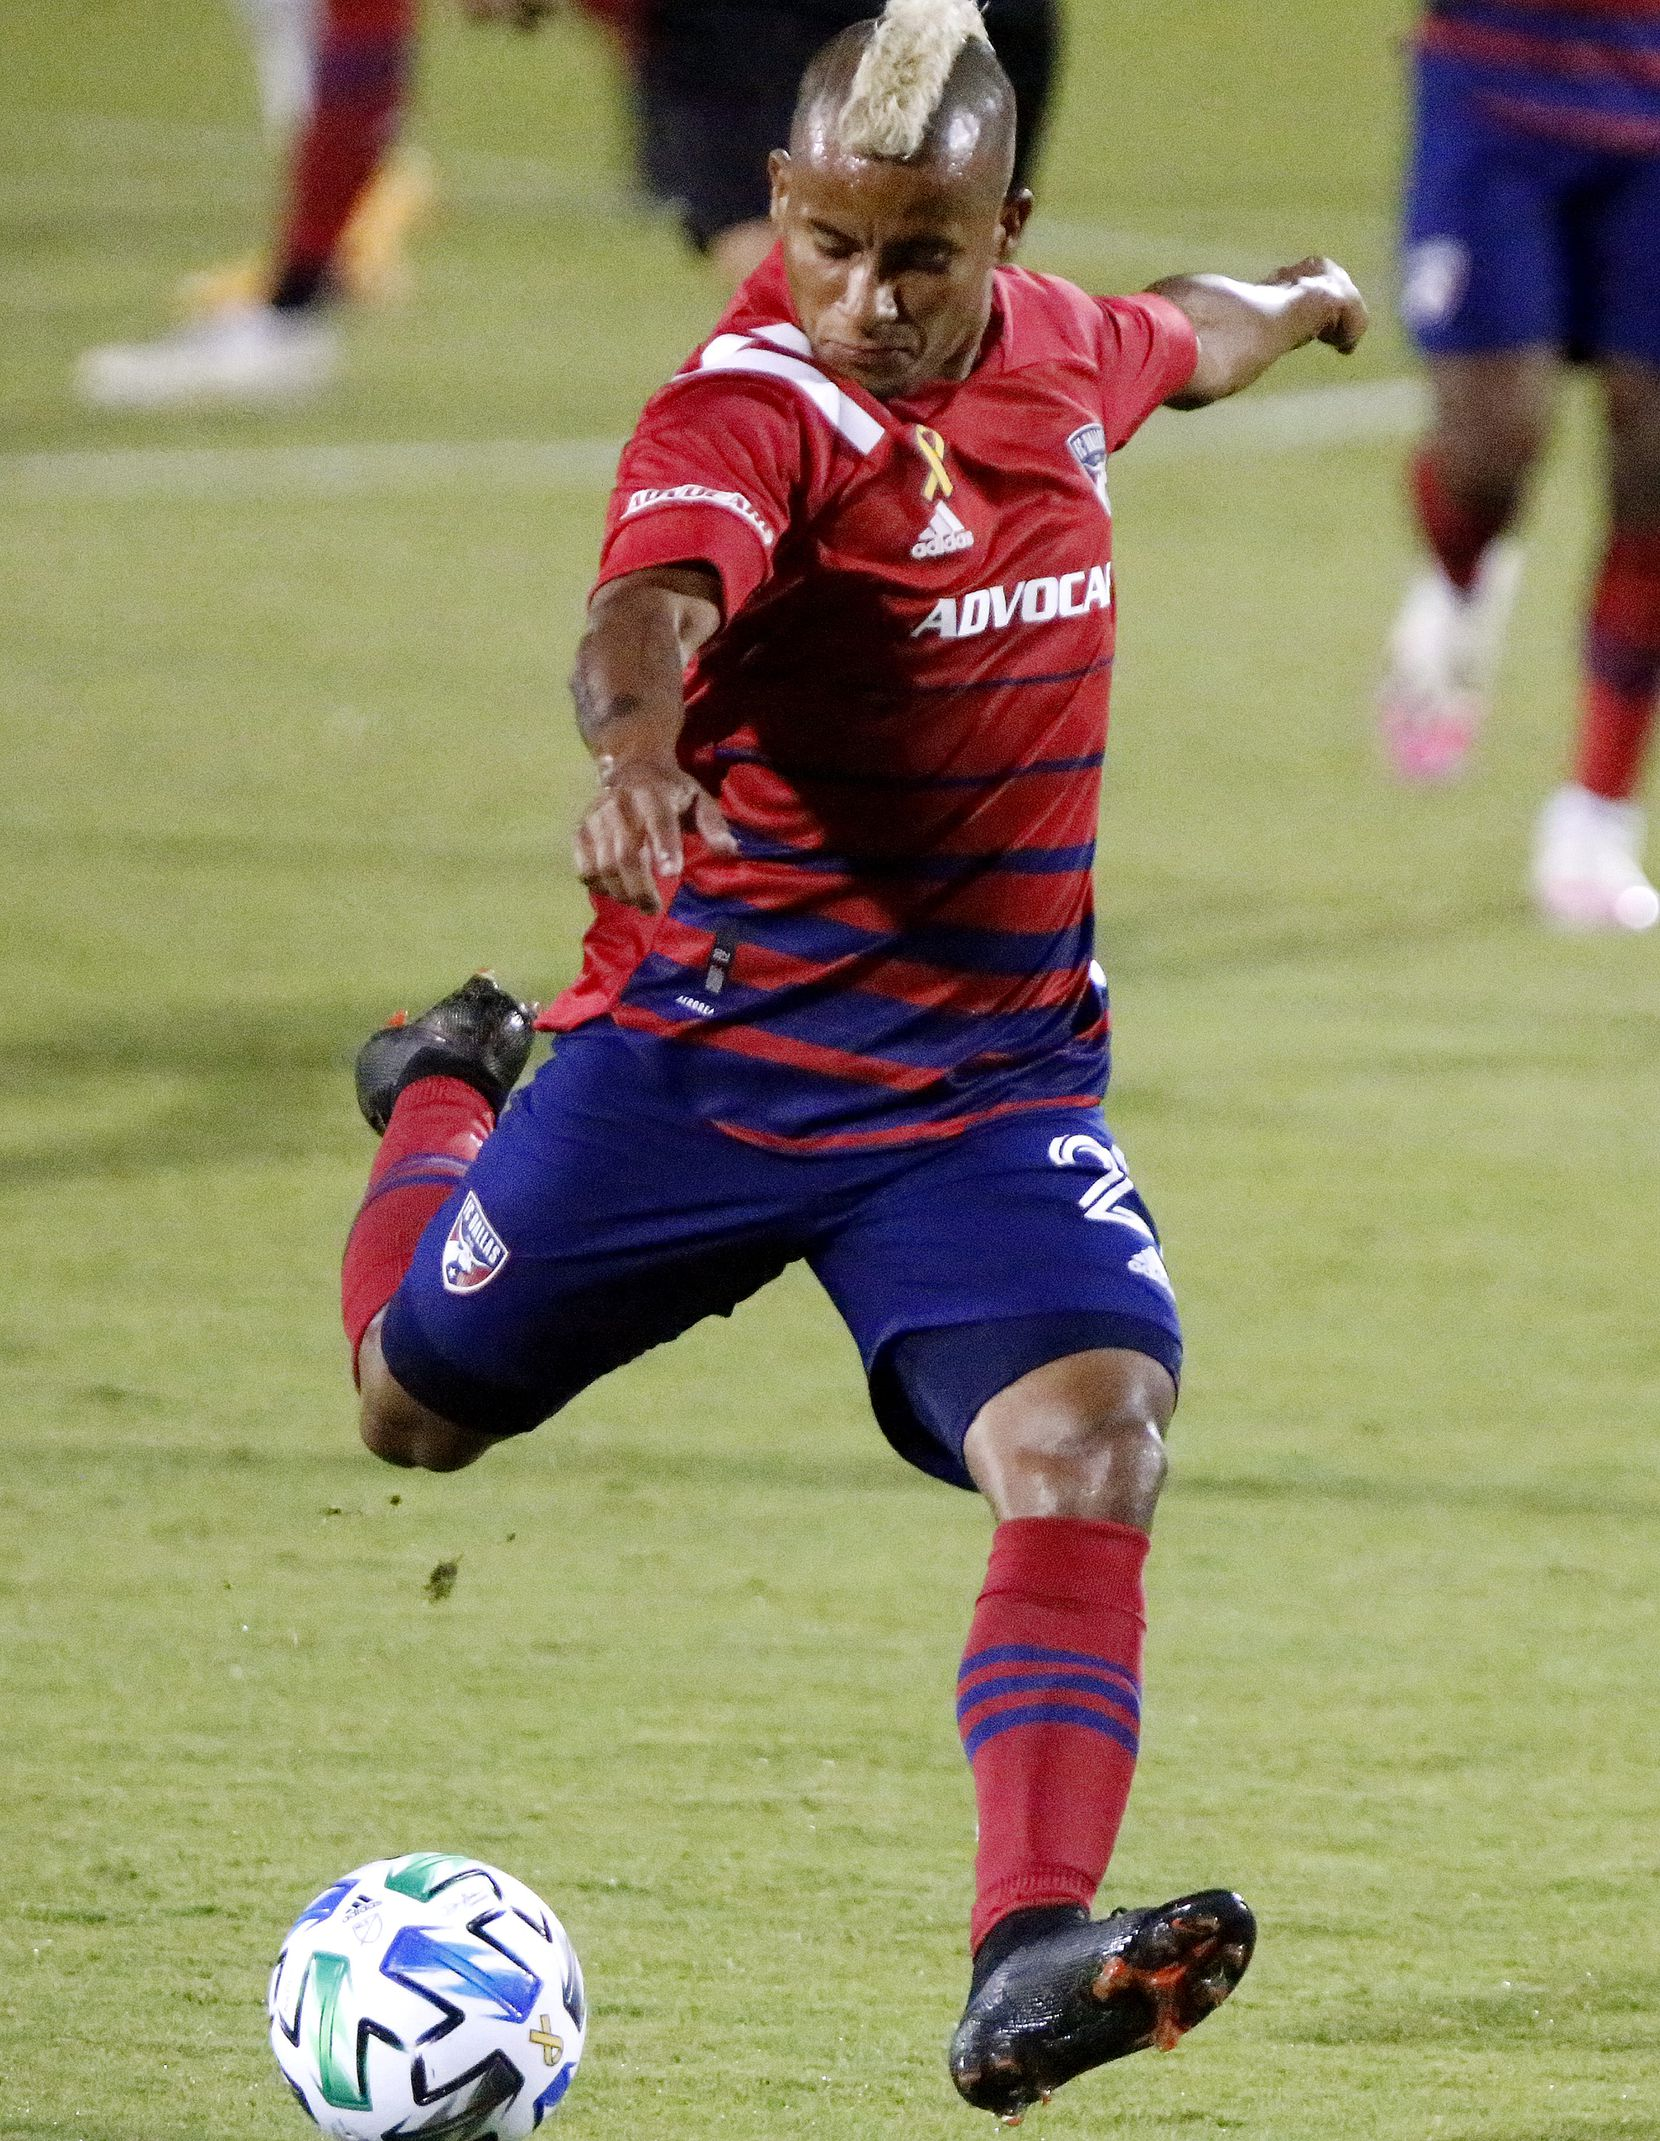 FC Dallas midfielder Michael Barrios (21) takes a shot on goal during the first half as FC Dallas hosted the Colorado Rapids at Toyota Stadium in Frisco on Wednesday night, September 16, 2020. (Stewart F. House/Special Contributor)